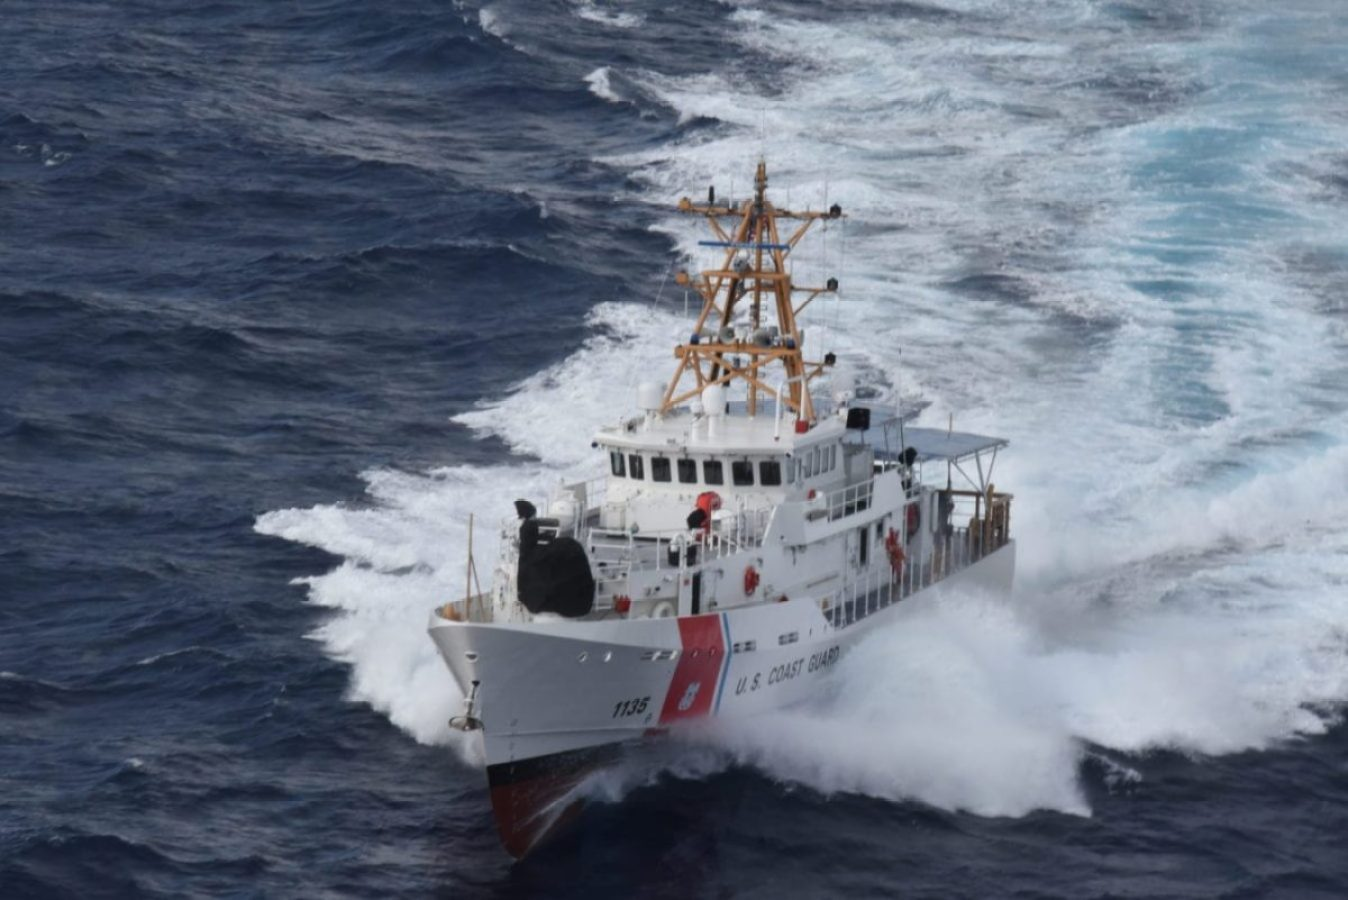 The newly commissioned Coast Guard Fast Response Cutter Angela McShan (WPC-1135) underway near Miami, Florida, Sept. 20, 2019.